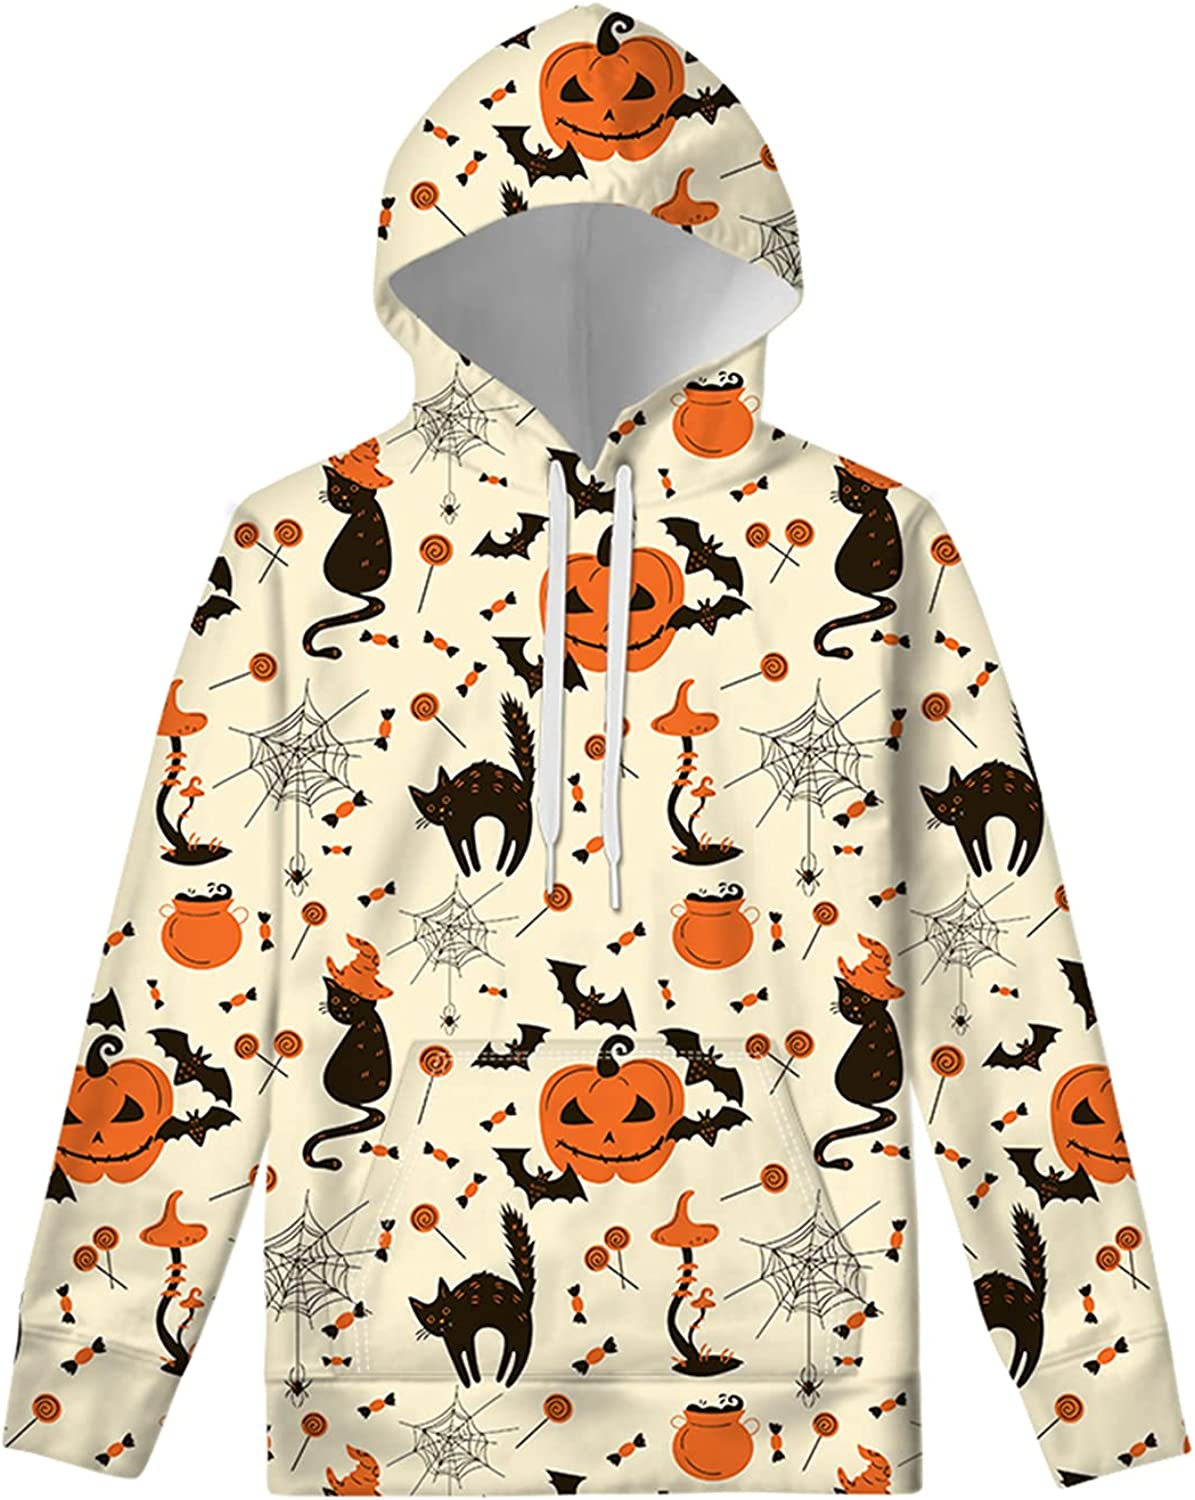 KUILIUPET Kids Hoodies with Strings Unisex Award-winning store Lig Youth Pockets Rapid rise and